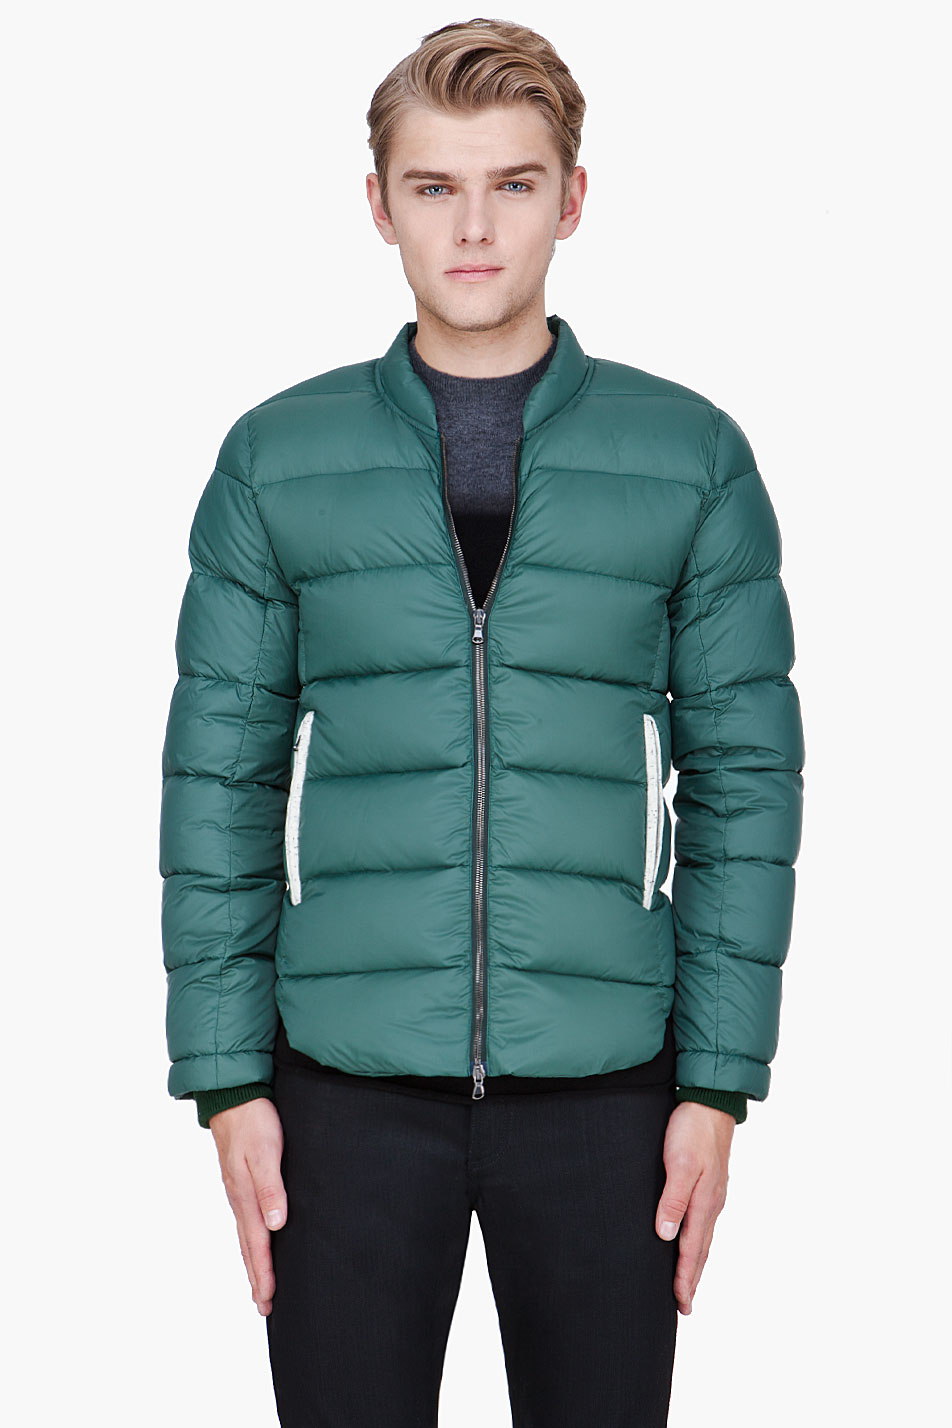 Find great deals on eBay for green quilted jacket. Shop with confidence. Skip to main content. eBay: Shop by category. Shop by category. Green Quilted Coats & Jackets for Men. The North Face Green Quilted Coats & Jackets for Men. Checked Green Quilted Coats, Jackets & Vests for Women.